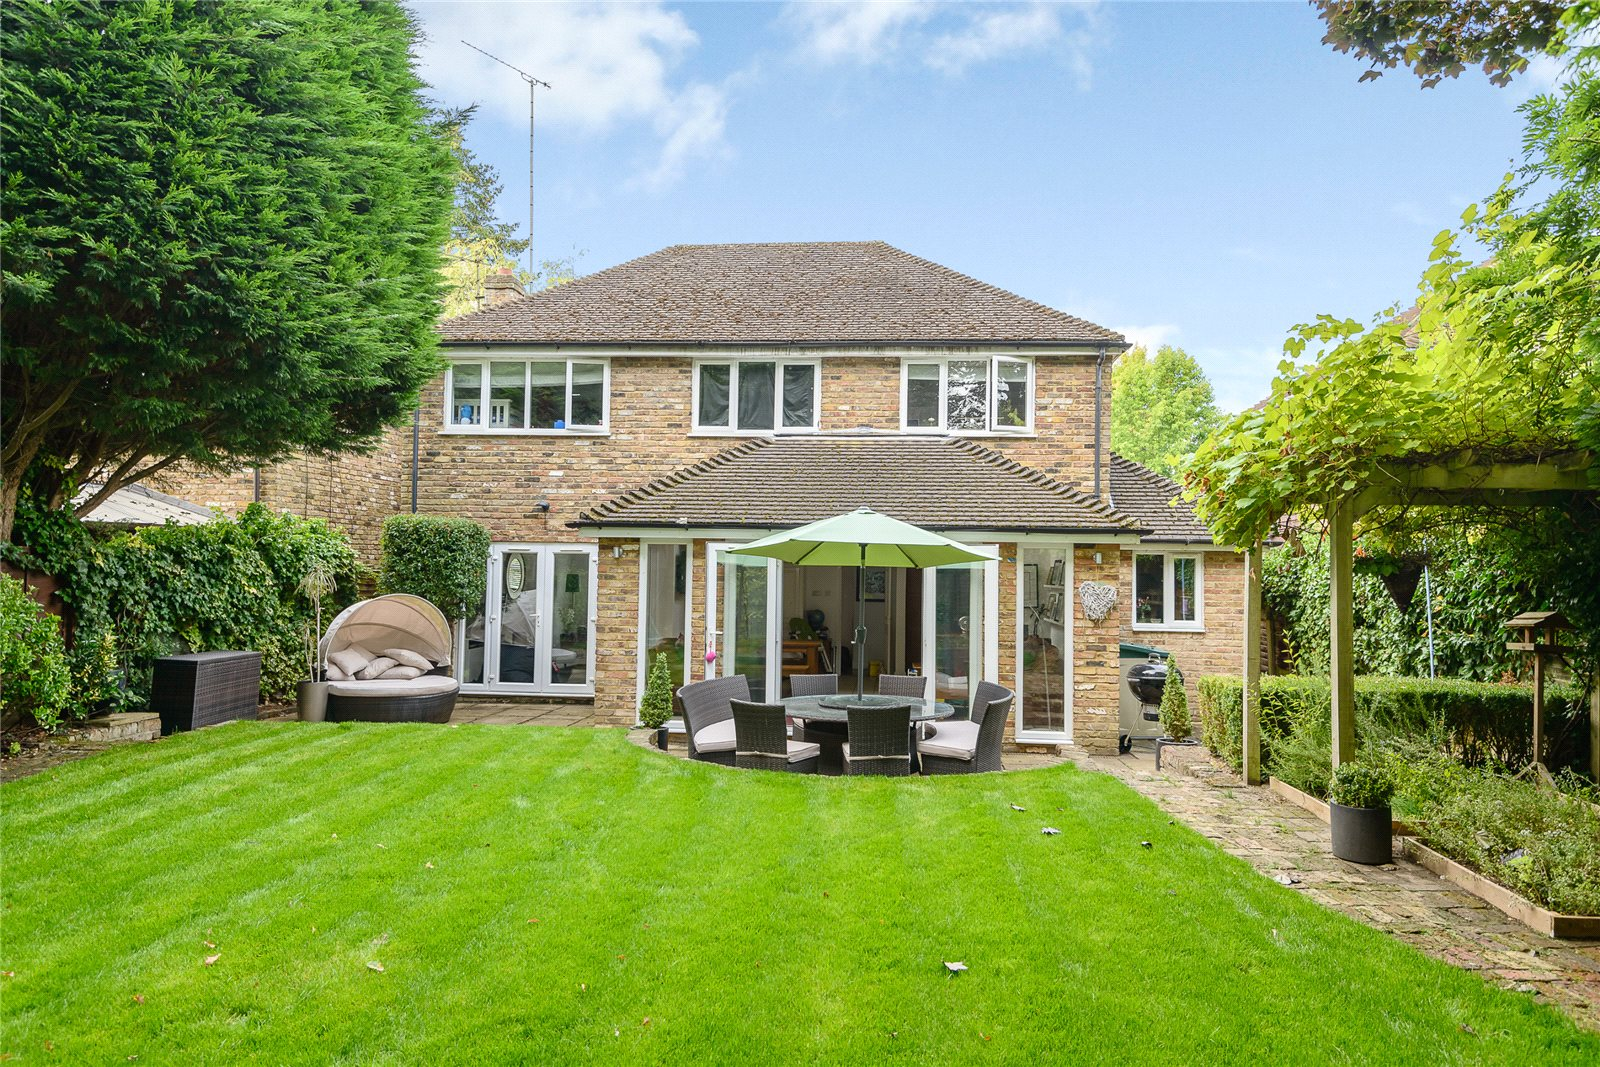 Single Family Home for Sale at Bosman Drive, Windlesham, Surrey, GU20 Windlesham, England